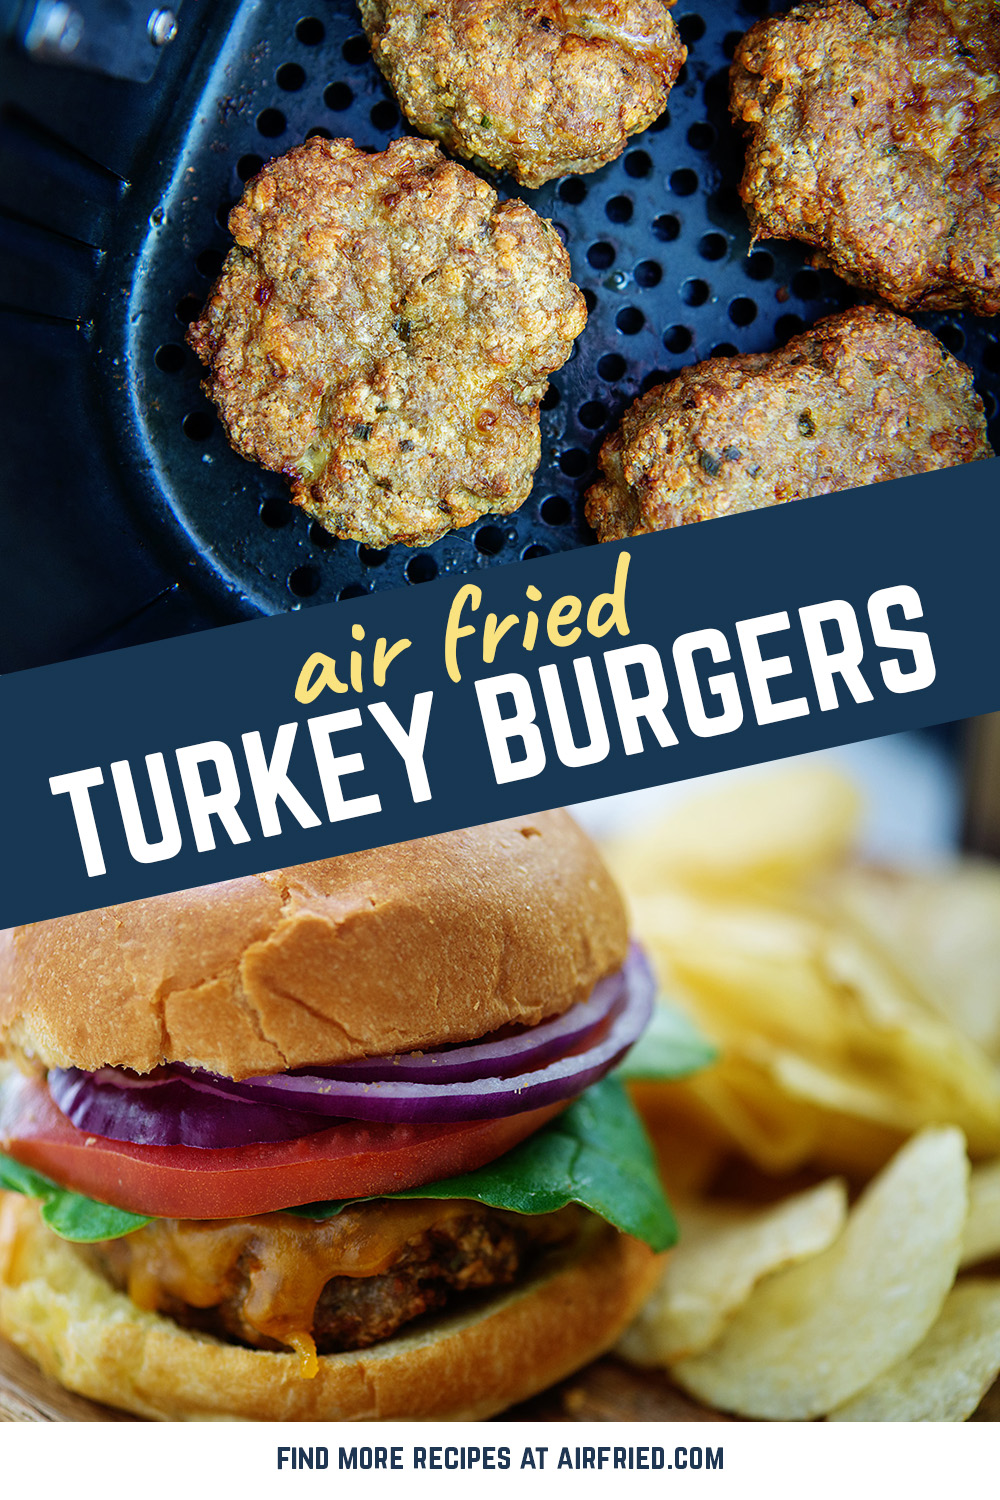 Turkey burgers are a great alternative to red meat!  They are easy to make in the air fryer and the result is a juicy burger you can serve however you like!  #turkeyburgers #airfried #lunchideas